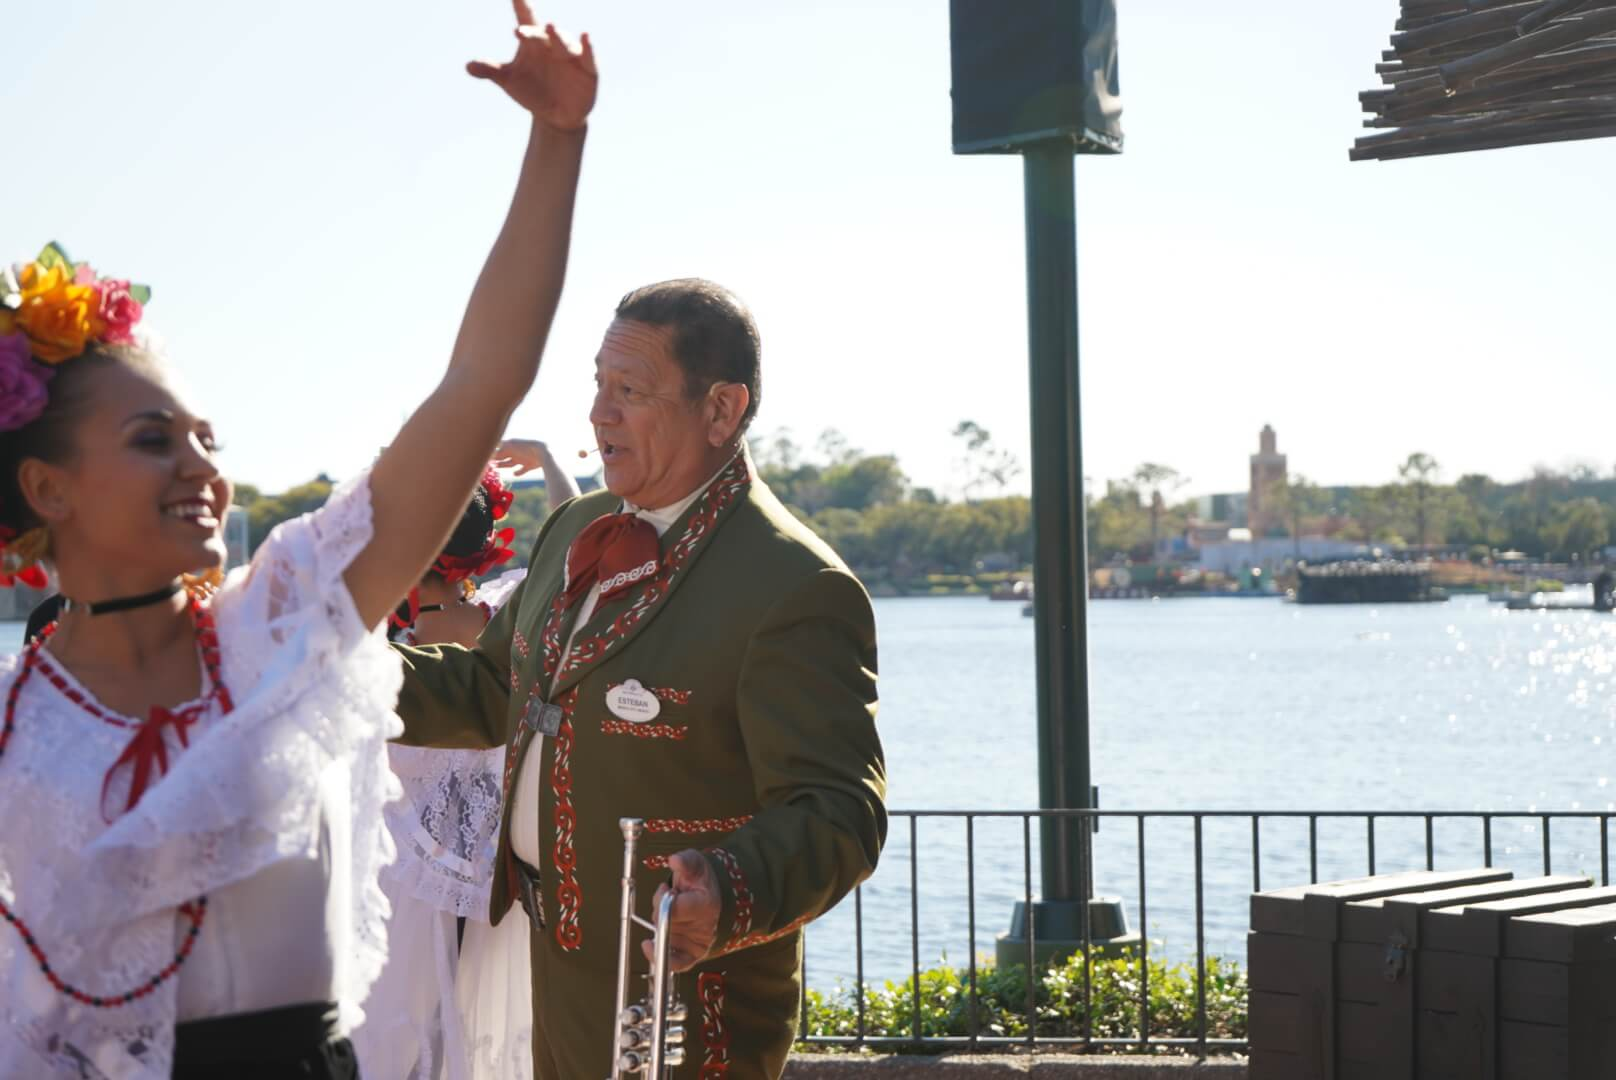 The Story of Coco Music and Puppet Show with Miguel in Mexico at Epcot Flower and Garden Festival